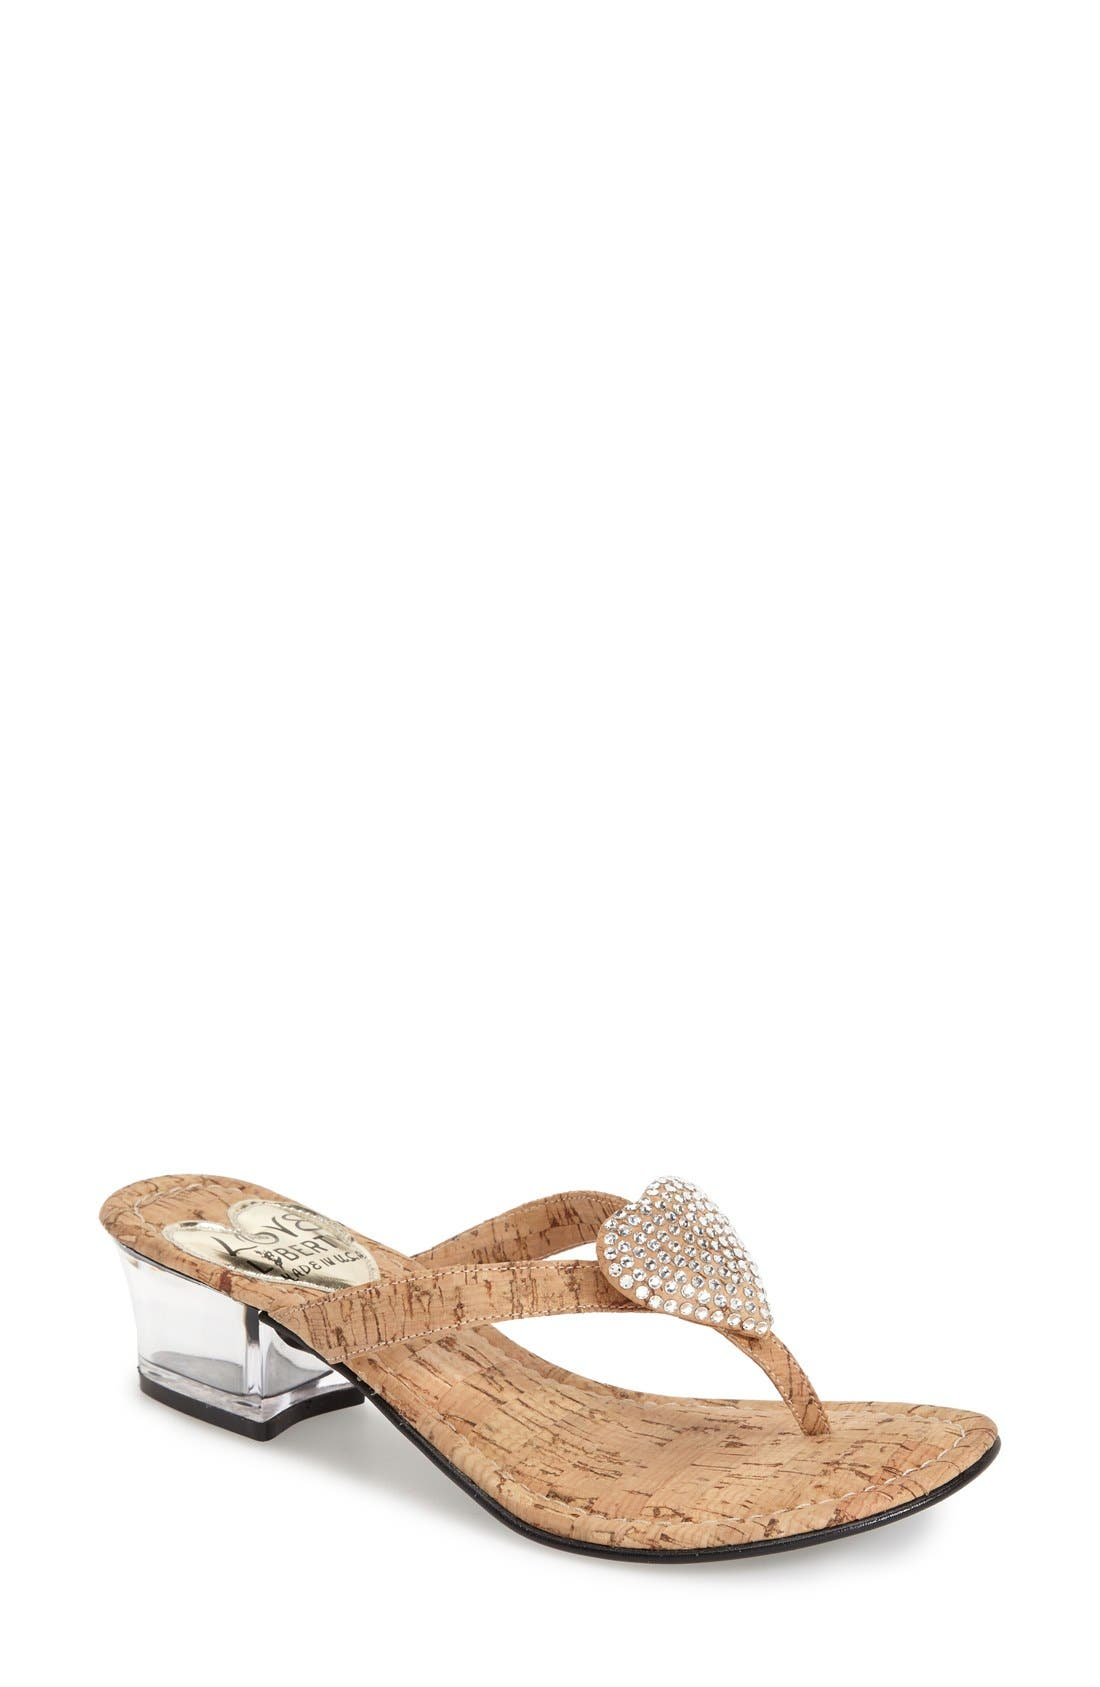 LOVE AND LIBERTY 'Love' Jeweled Flip Flop Sandal